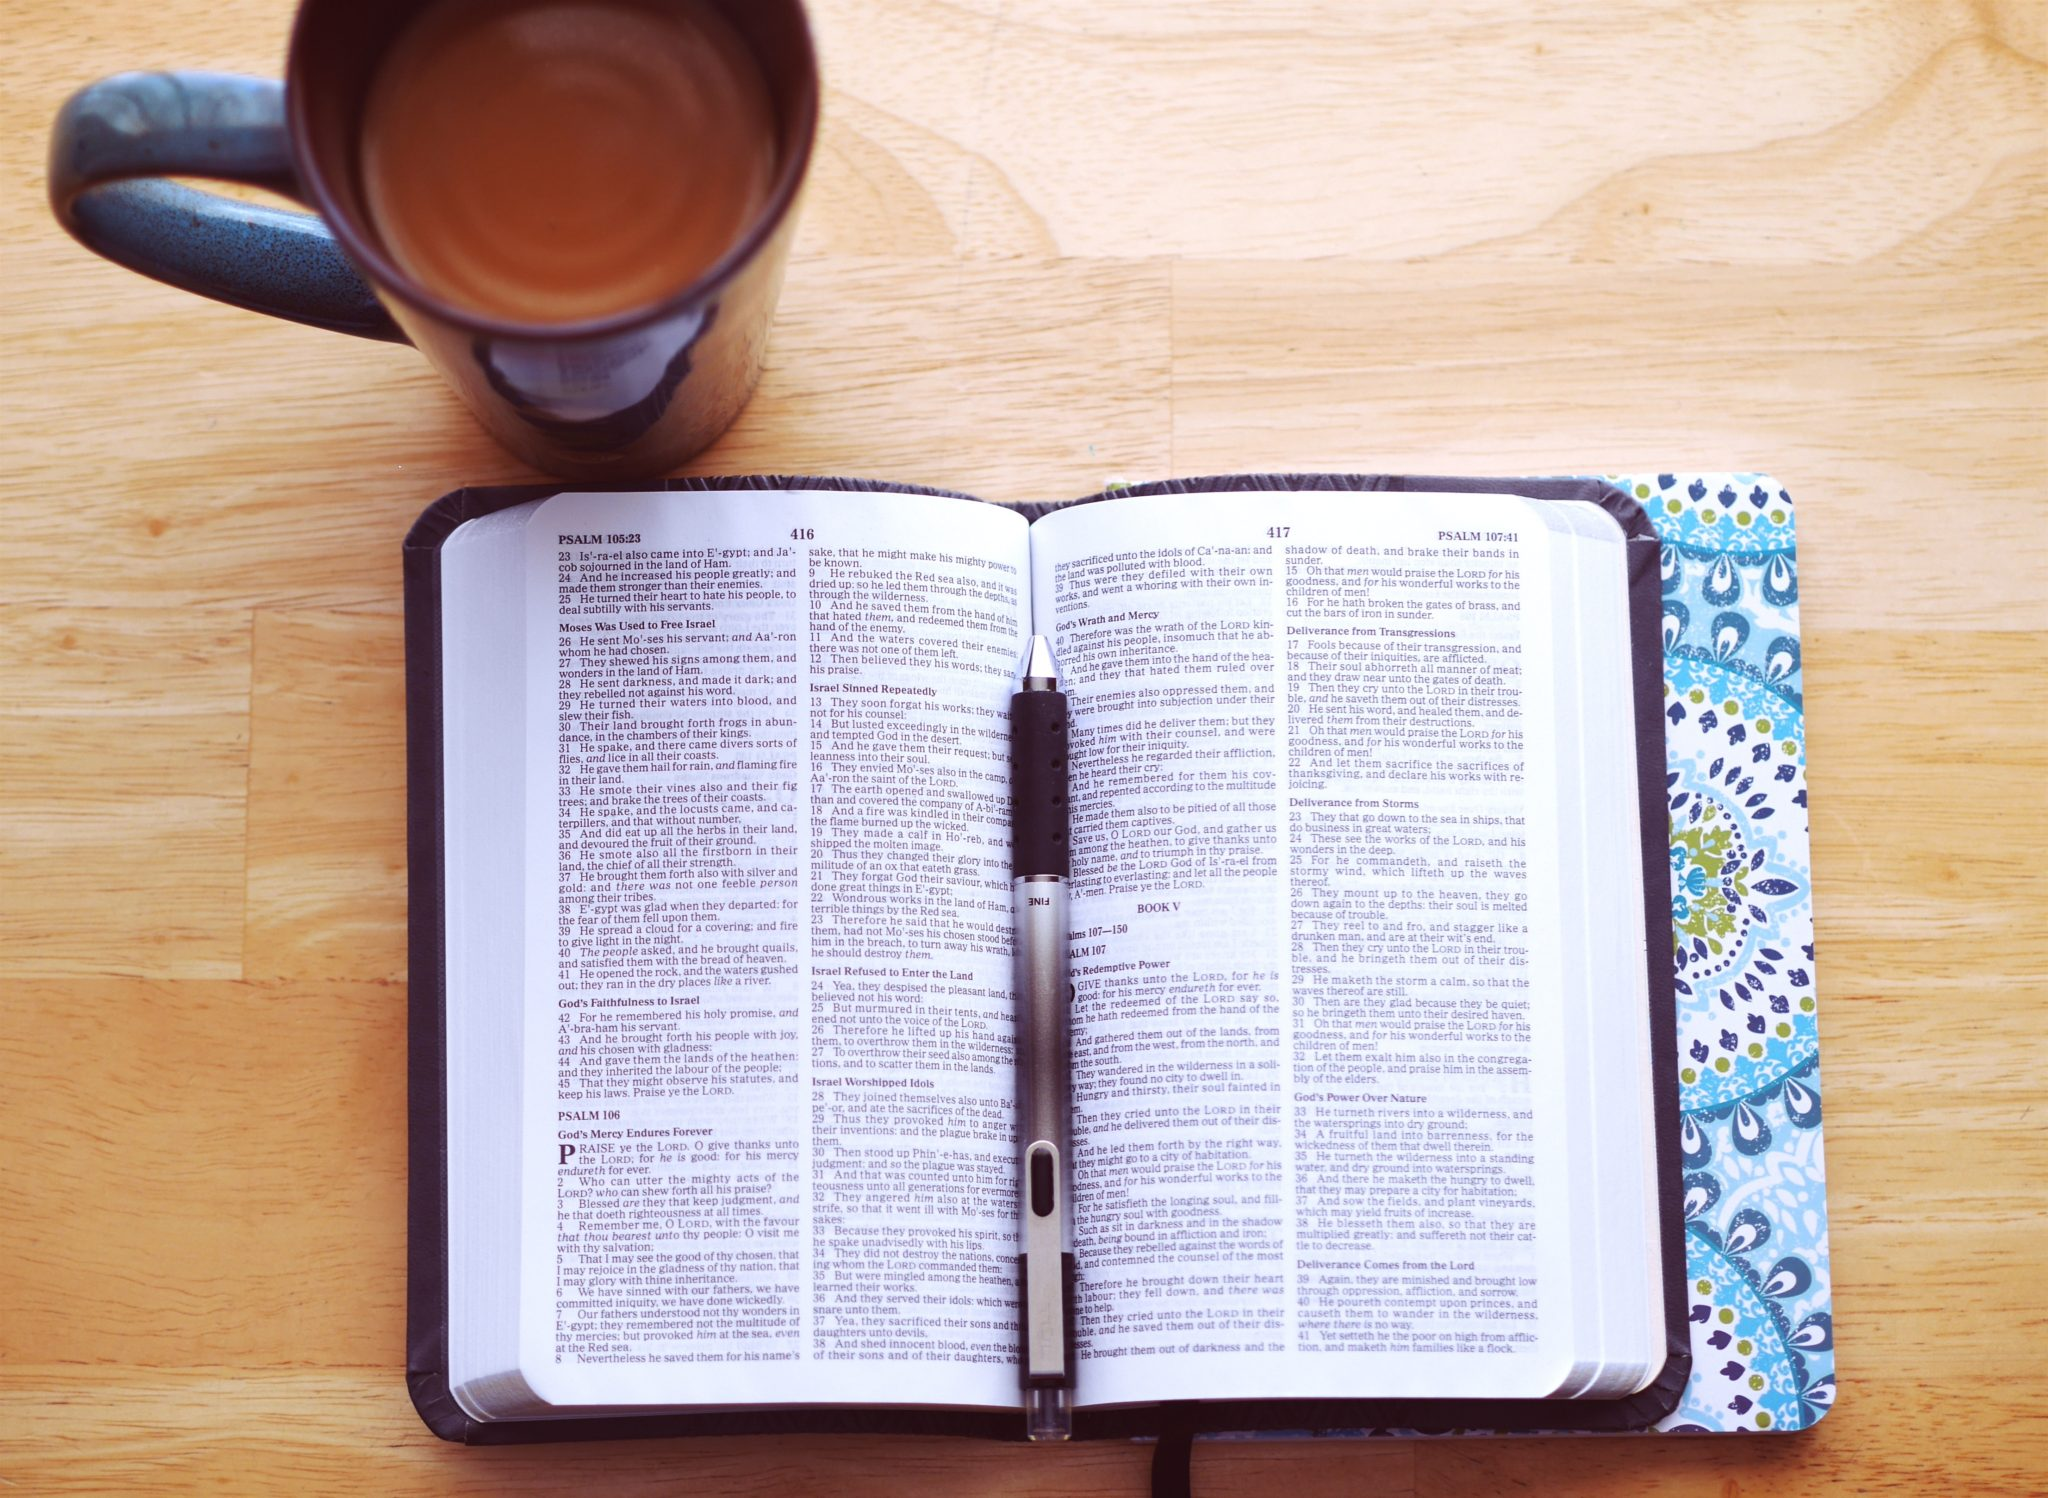 platforms that help to grow in the christian faith